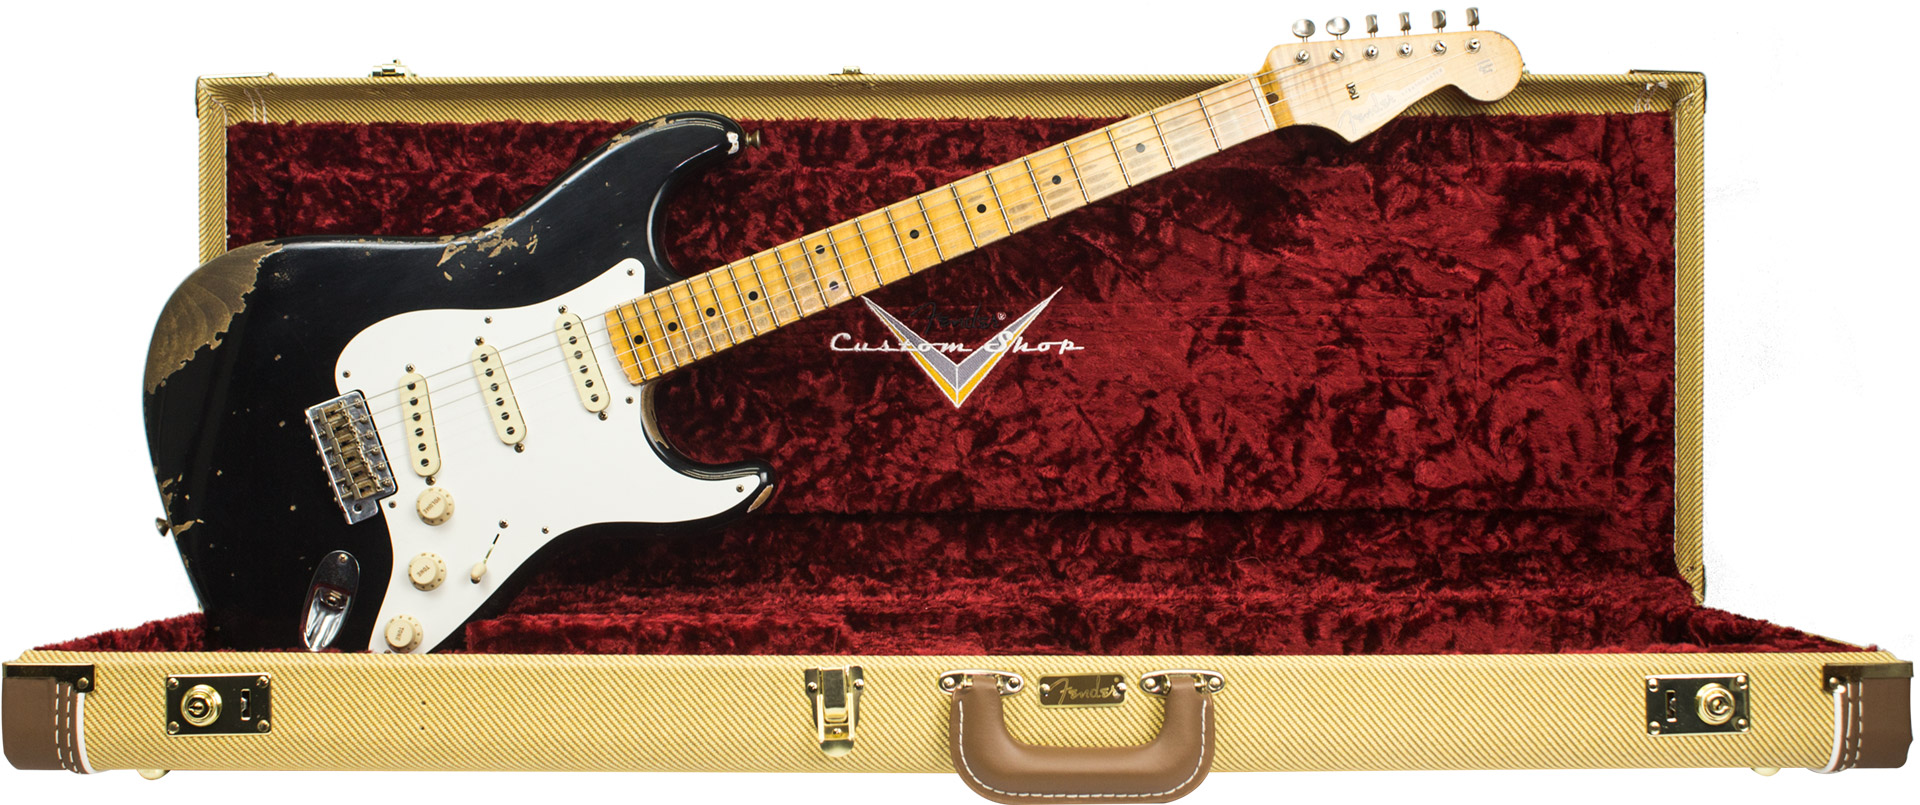 GUITARRA FENDER 923 5000 - 58 STRATOCASTER HEAVY RELIC 2018 COLLECTION - 511 - AGED BLACK